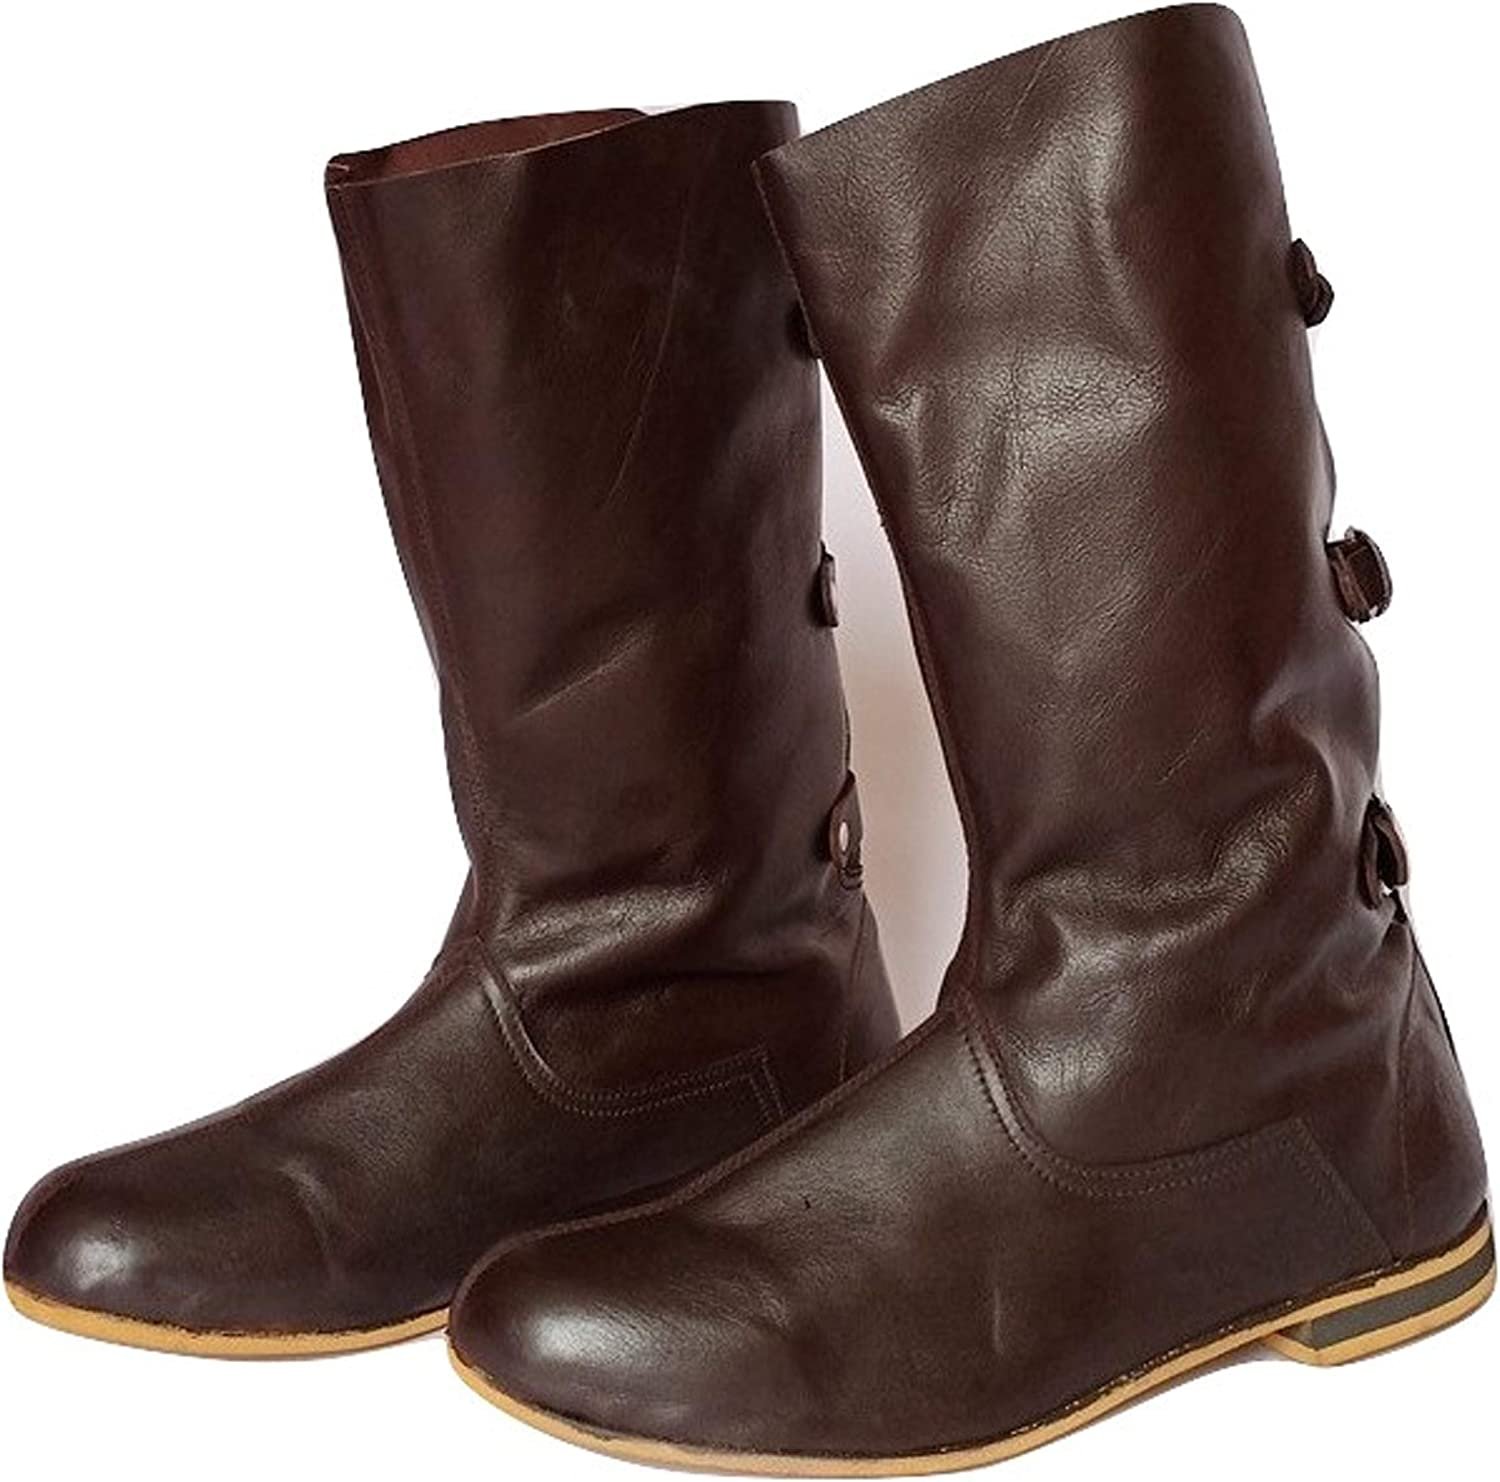 AnNafi Medieval Brown Tampa shopping Mall Leather Boots Inspi 3 Renaissance Buckle